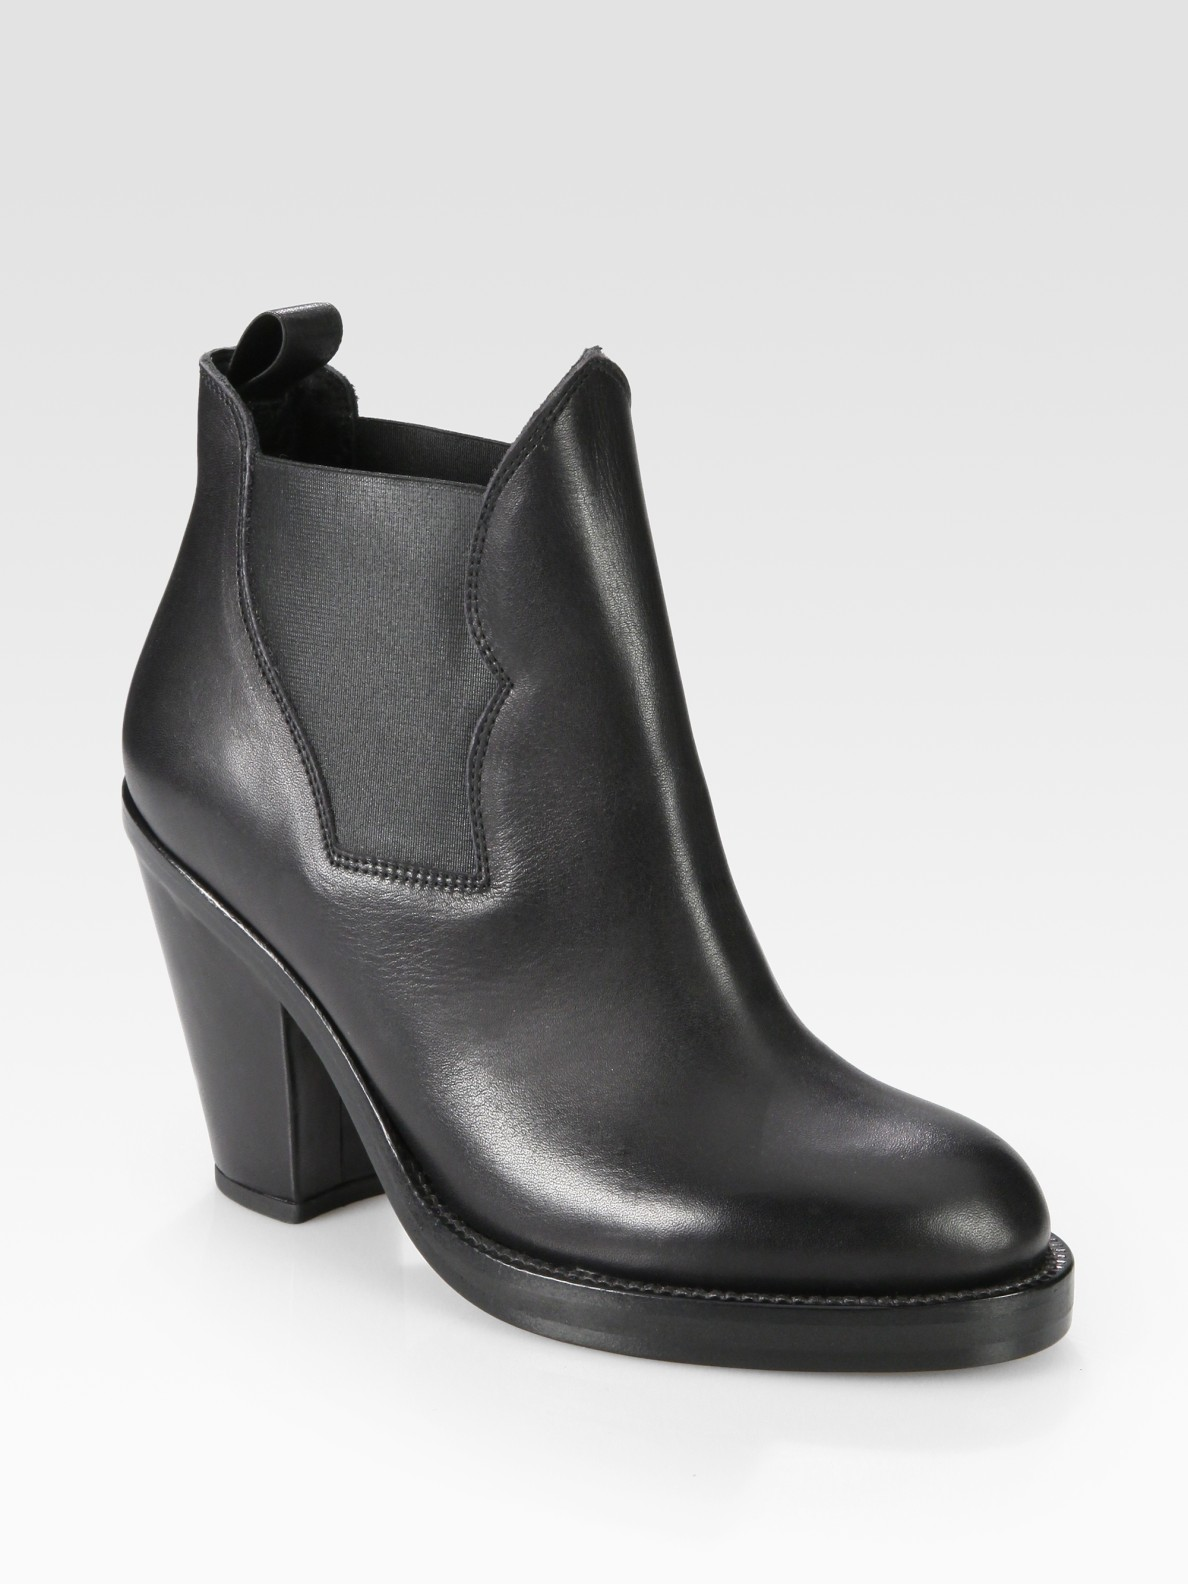 acne studios star stretchy leather ankle boots in black lyst. Black Bedroom Furniture Sets. Home Design Ideas